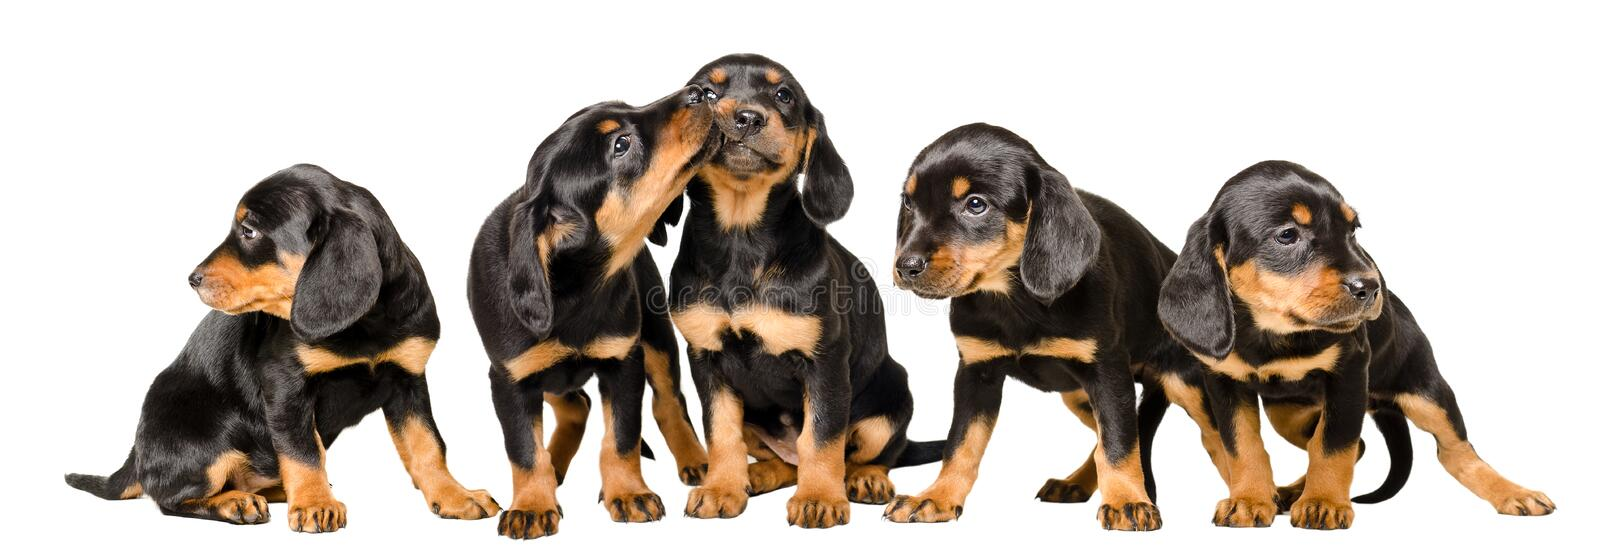 Five adorable puppies together stock images